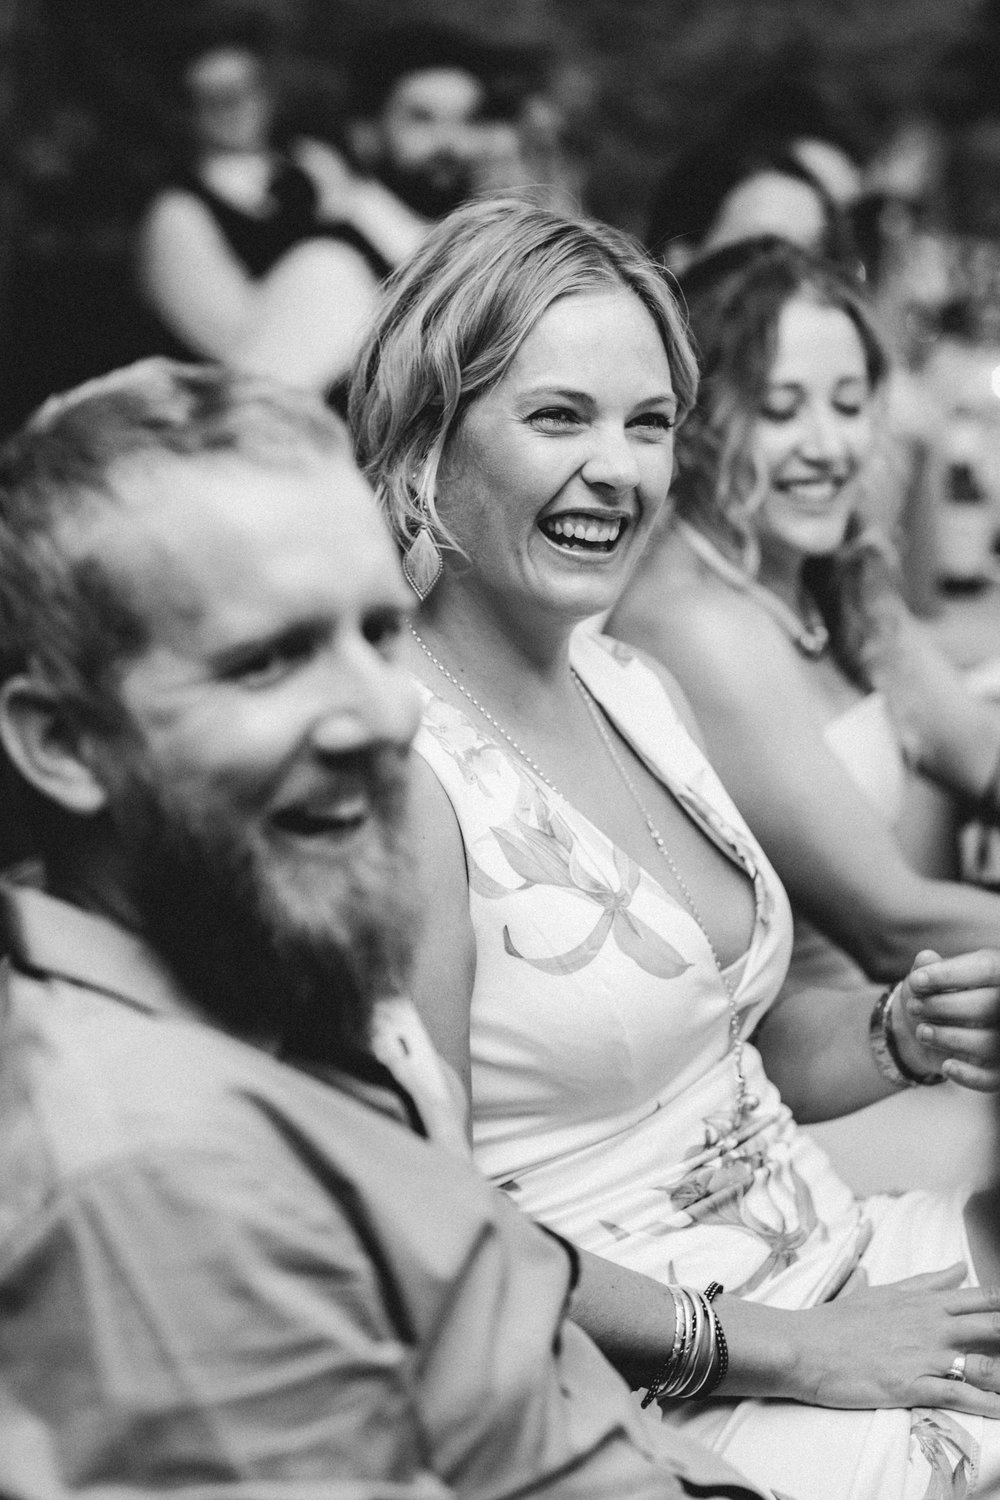 Amanda_Alessi_Wedding_Photography_Perth_Australia_31.jpg